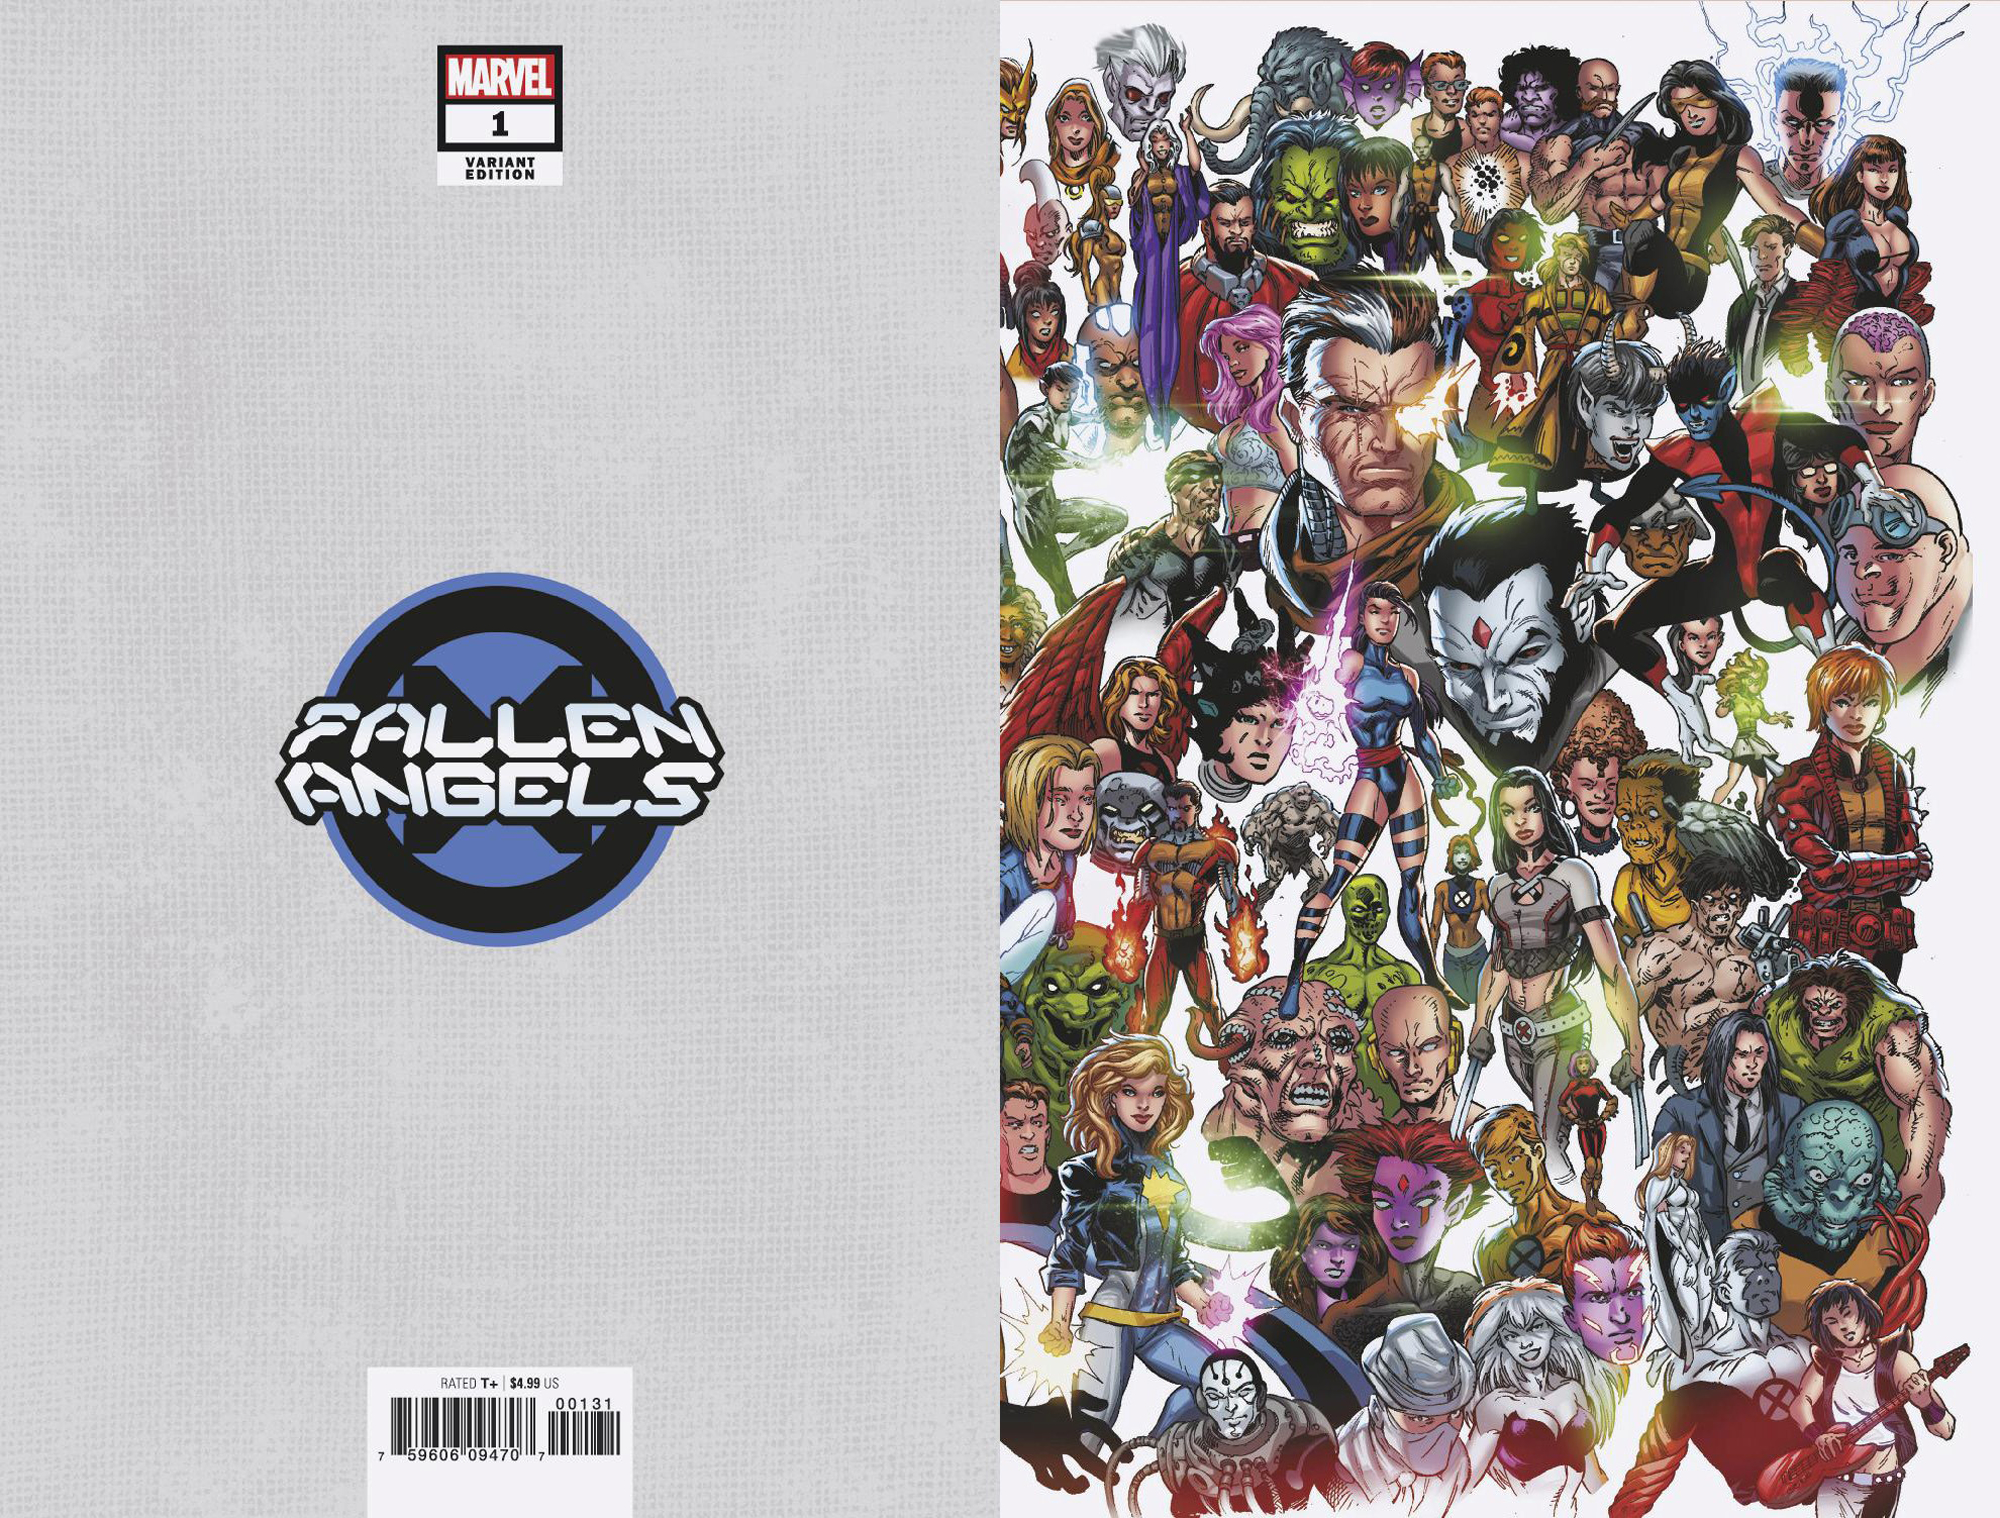 FALLEN ANGELS #1 BAGLEY EVERY MUTANT EVER VAR DX